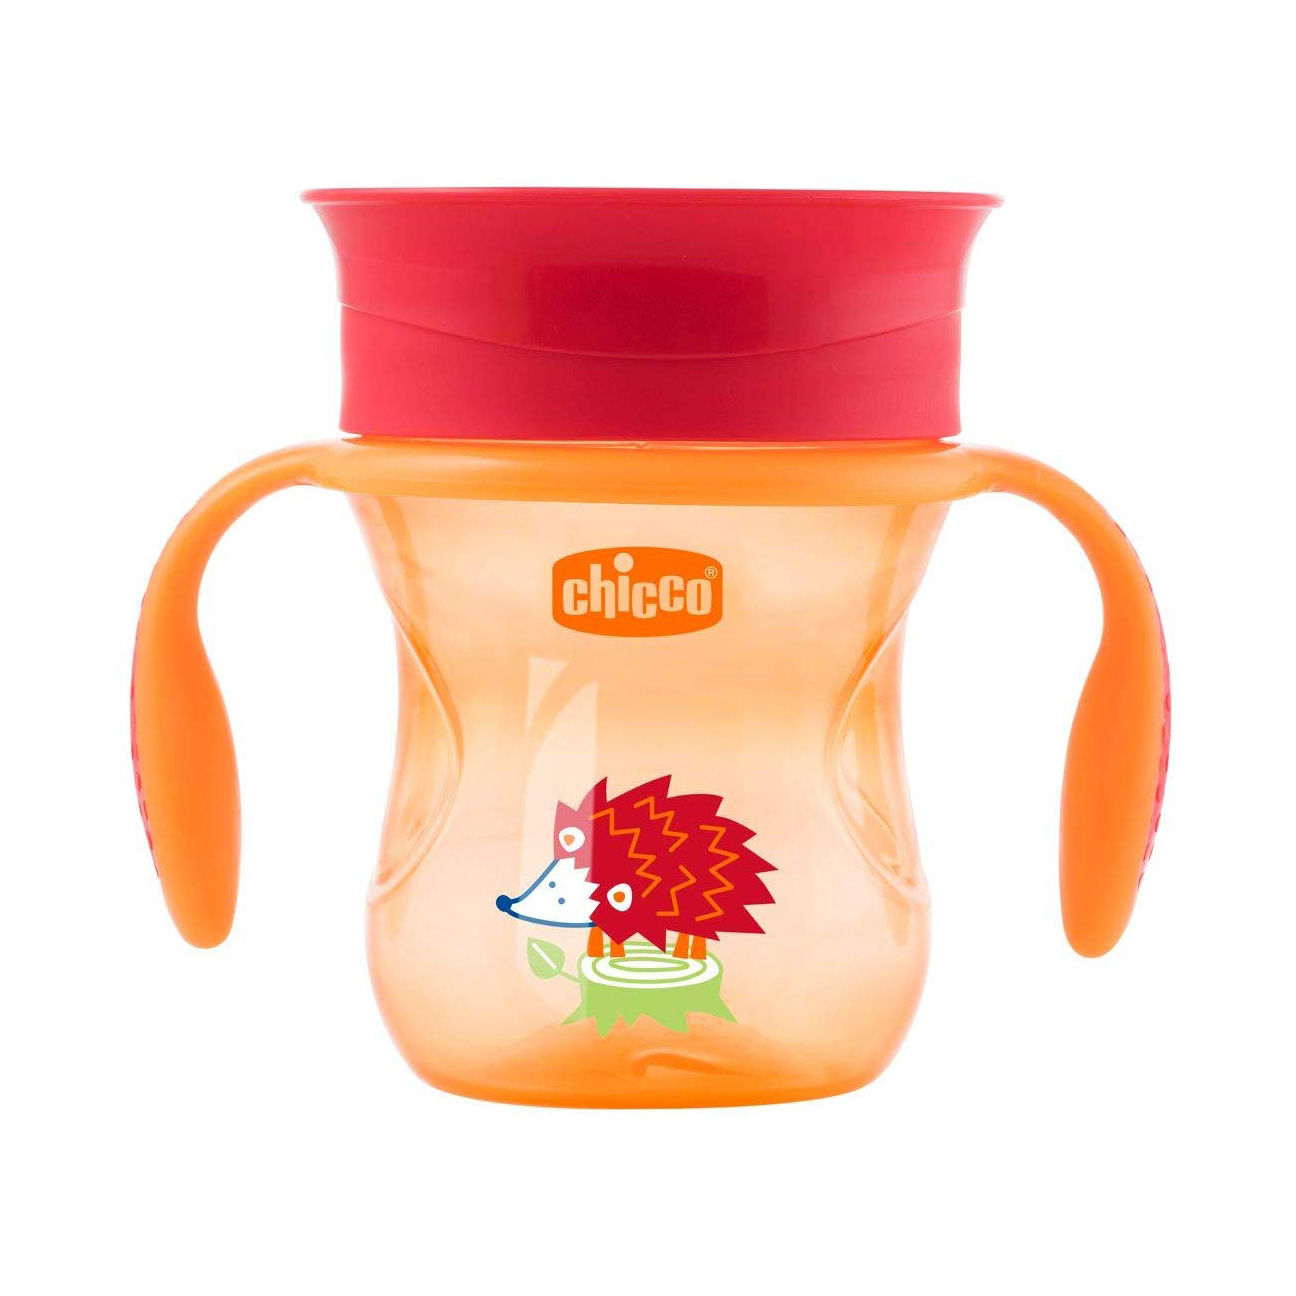 Canuta Chicco 360 Perfect Cup, Unisex, 12luni+ imagine